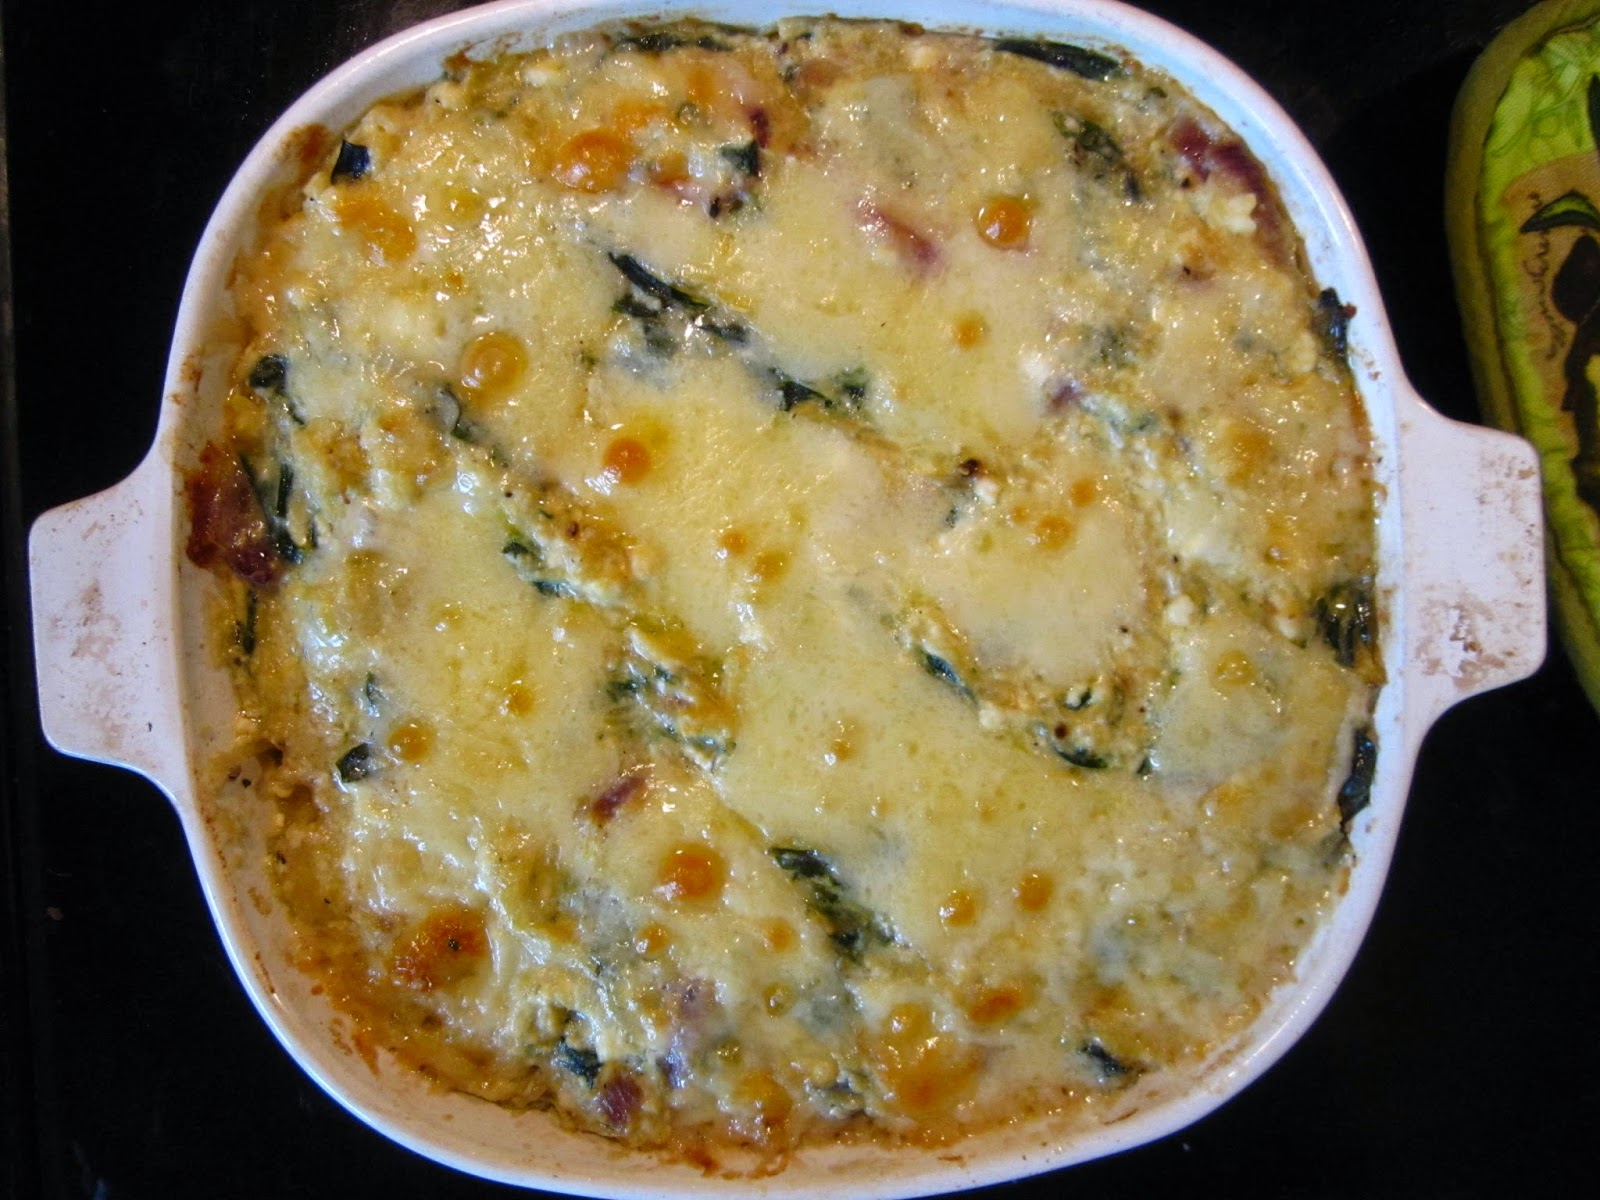 Cold Hands Warm Earth: Spaghetti Squash and Swiss Chard Casserole